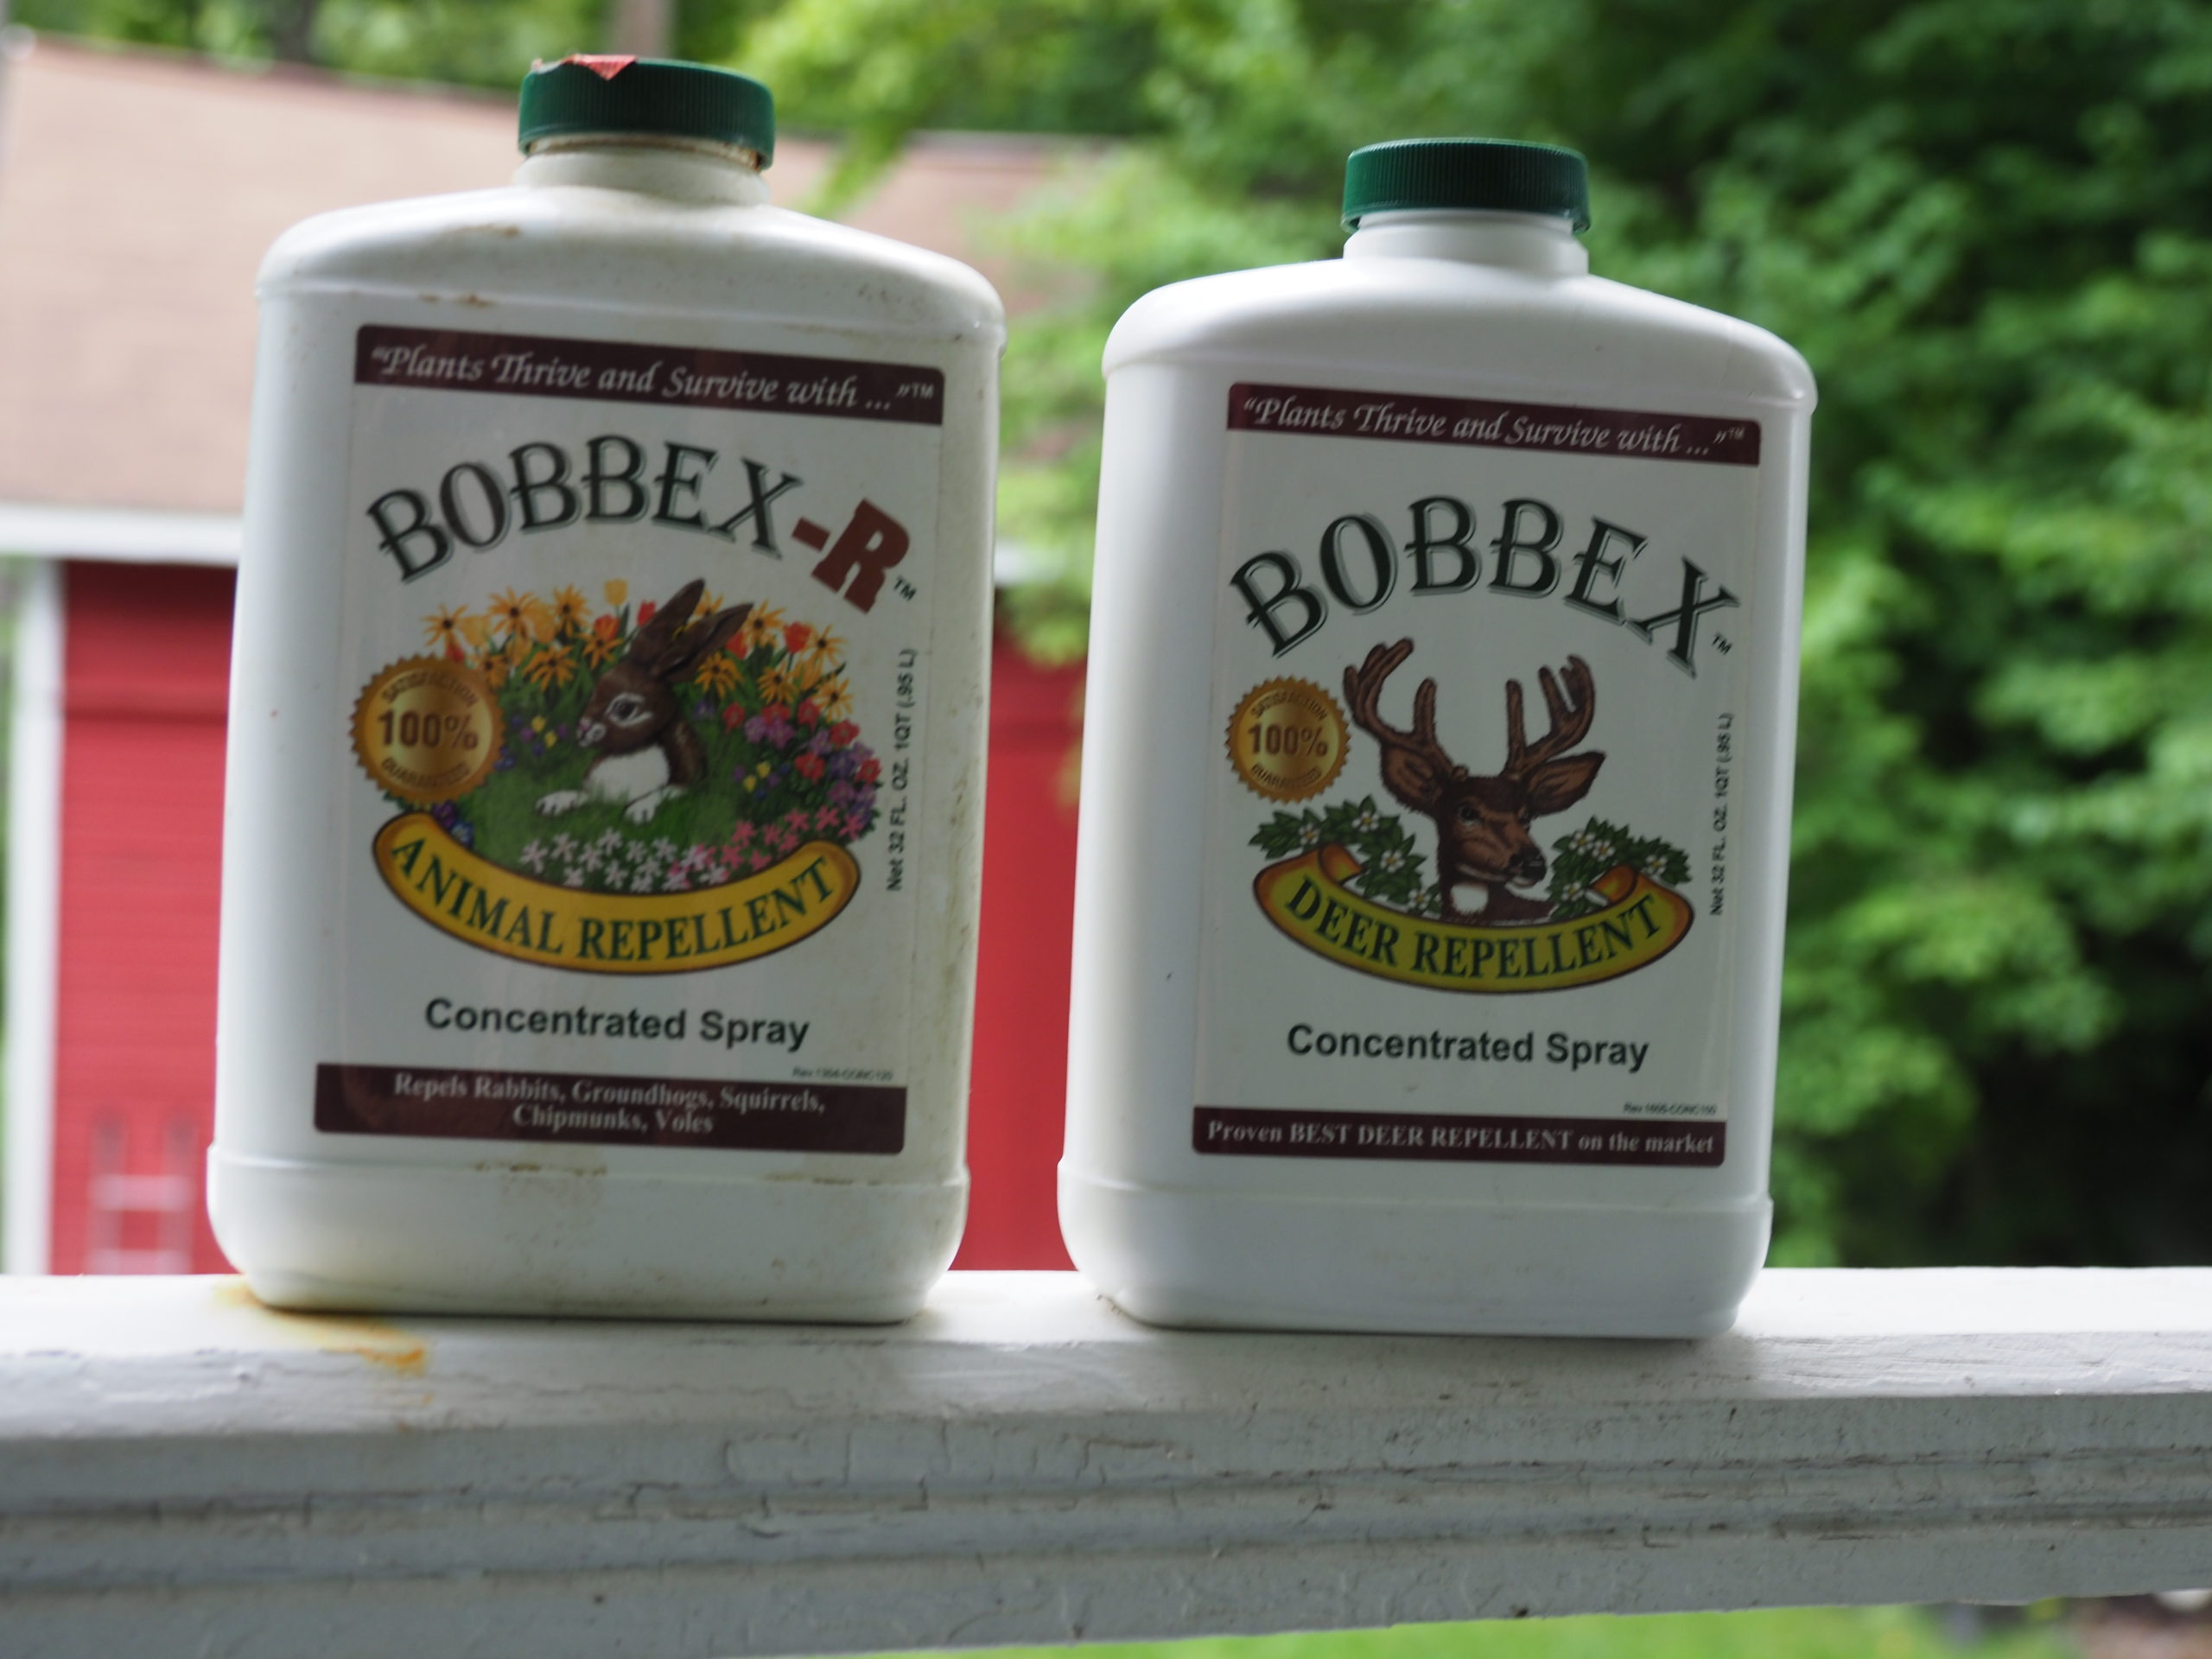 Only Bobbex-R (left) will work as a bulb dip to repel deer, mice, voles and squirrels. The dip only lasts for the first year, but in following years Bobbex-R can be used as a soil drench. The Bobbex on the right, the standard Bobbex, does not have the same repellency.